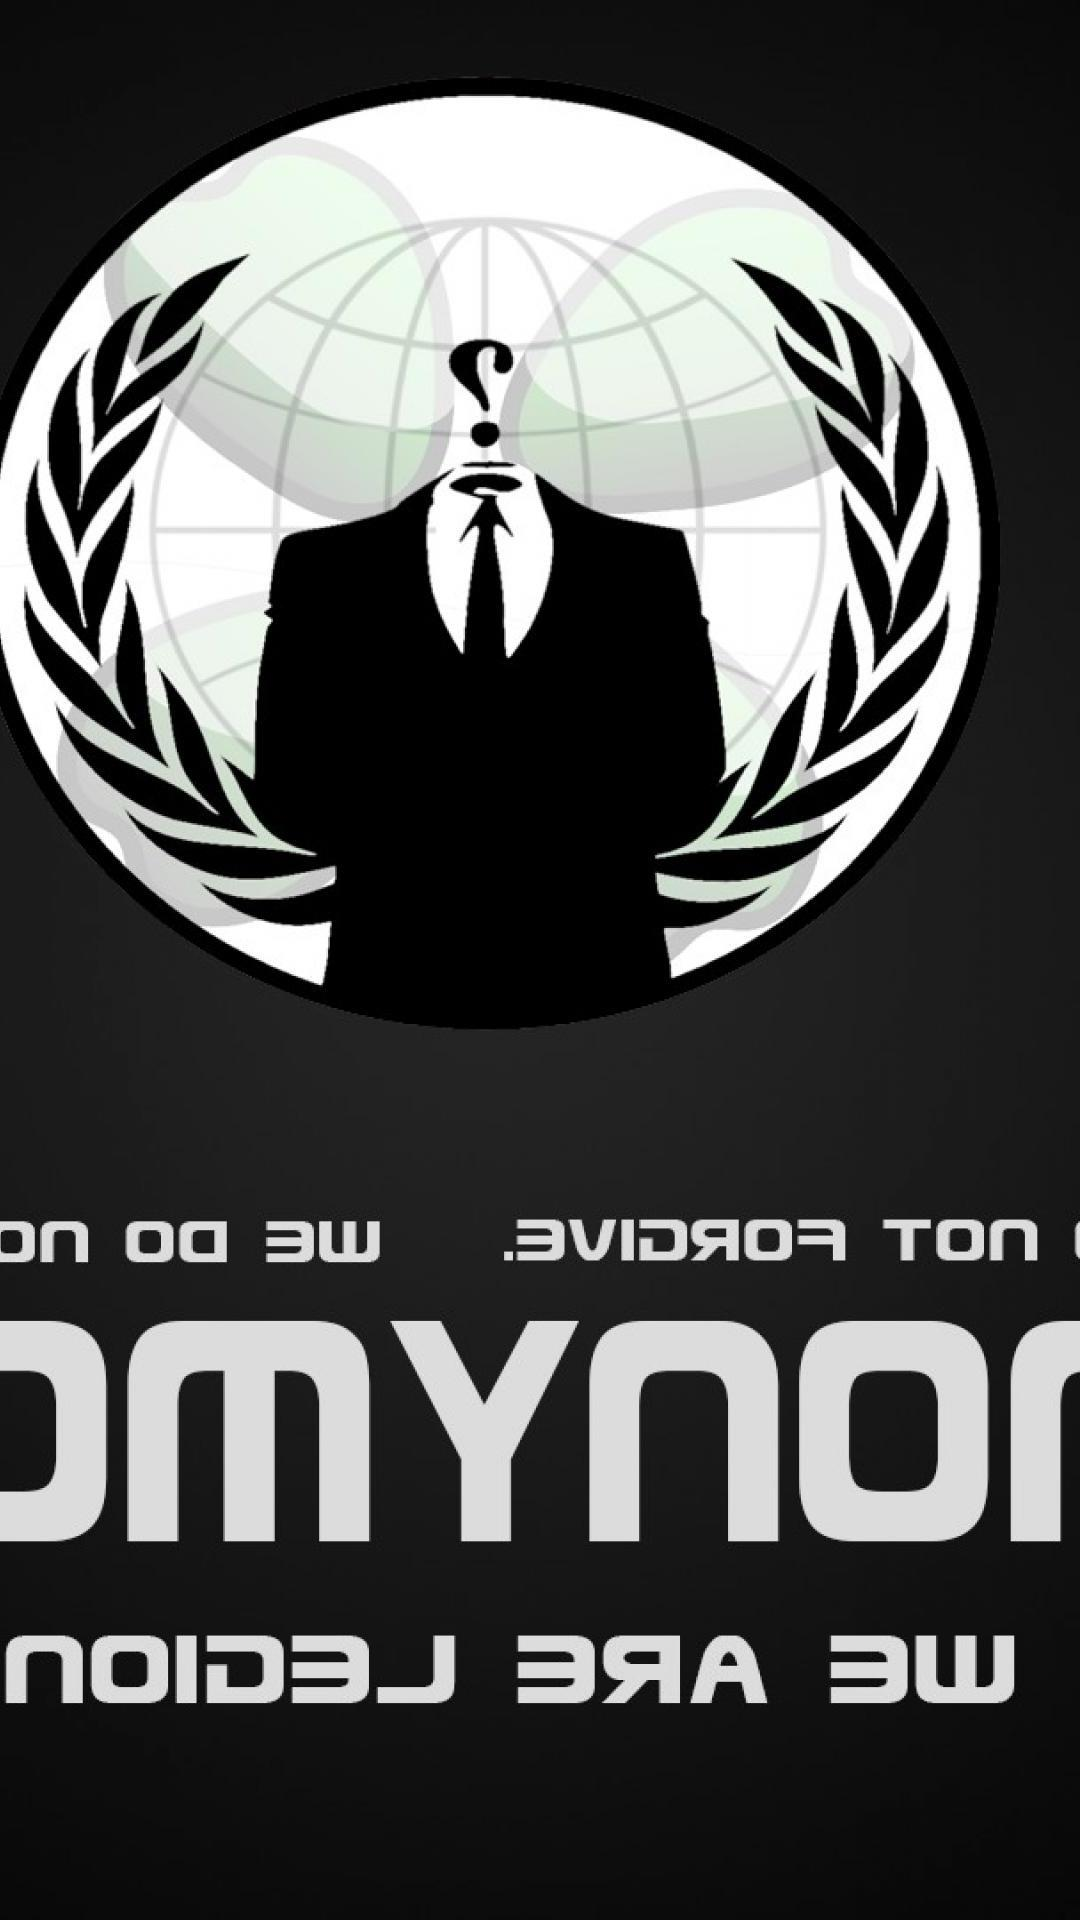 Hq Anonymous Wallpaper For Iphone - Red Black And White Symbol , HD Wallpaper & Backgrounds